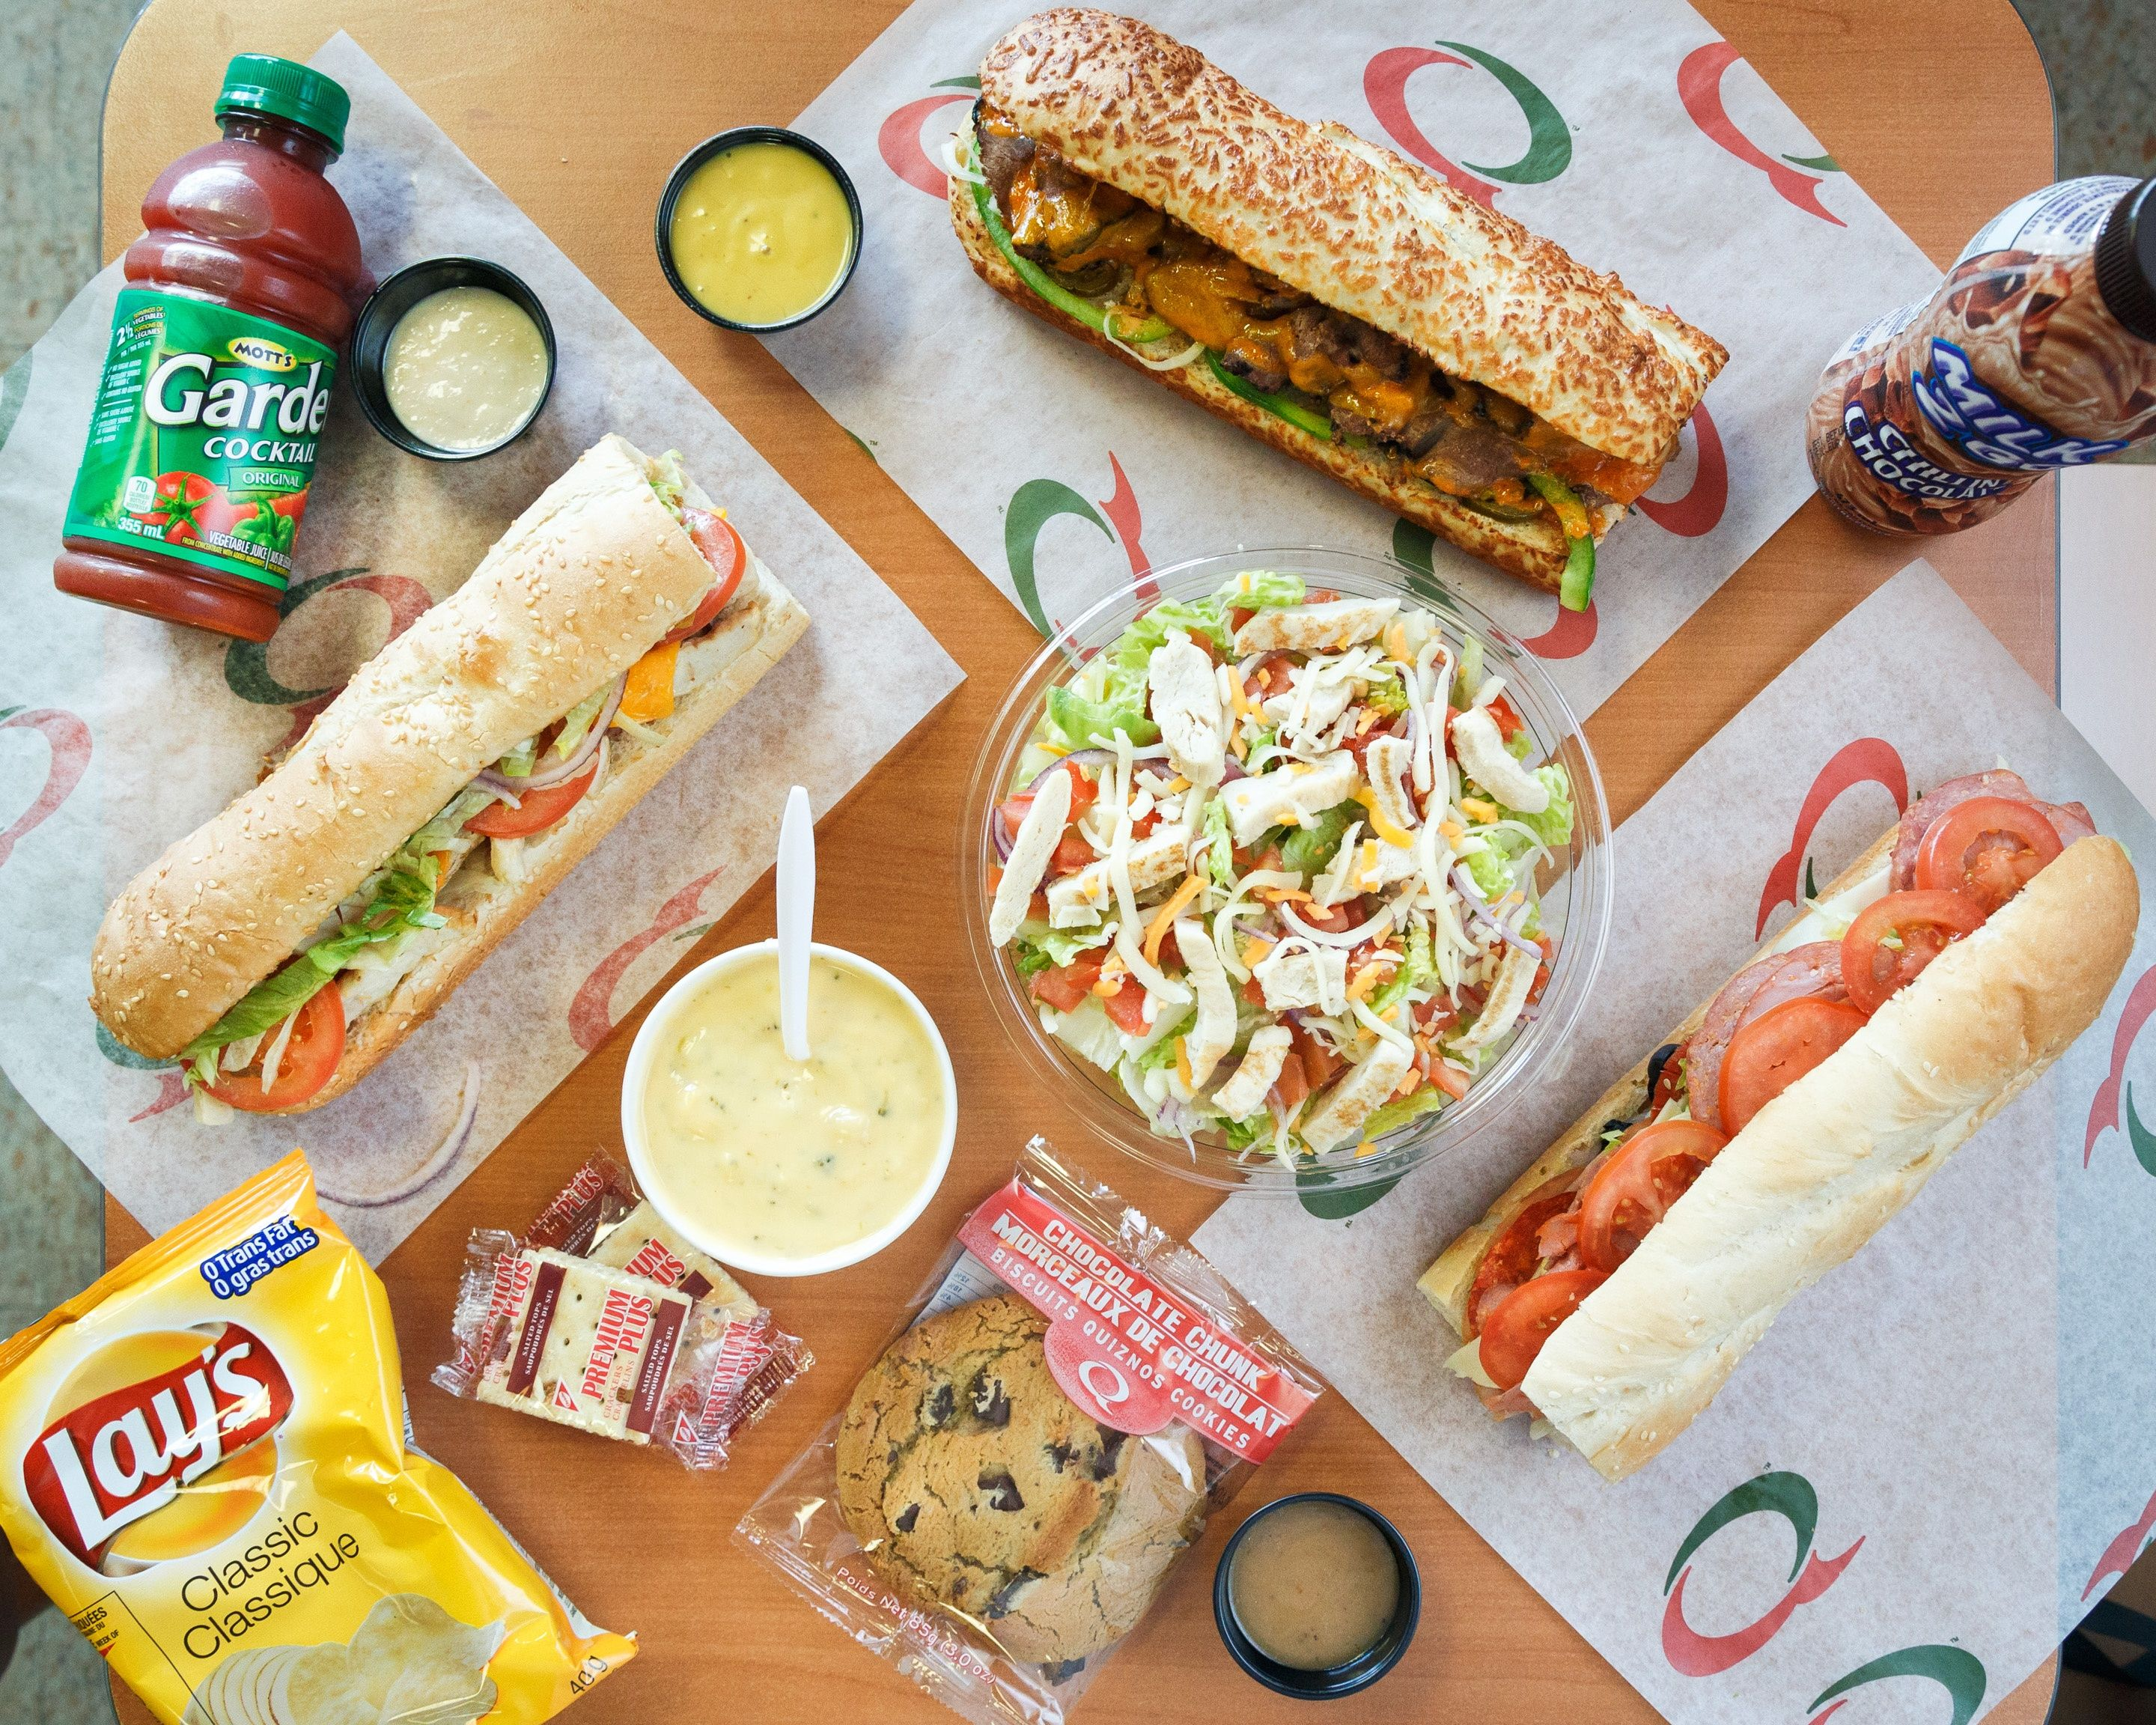 Quiznos Commercial Dr Delivery Vancouver Uber Eats